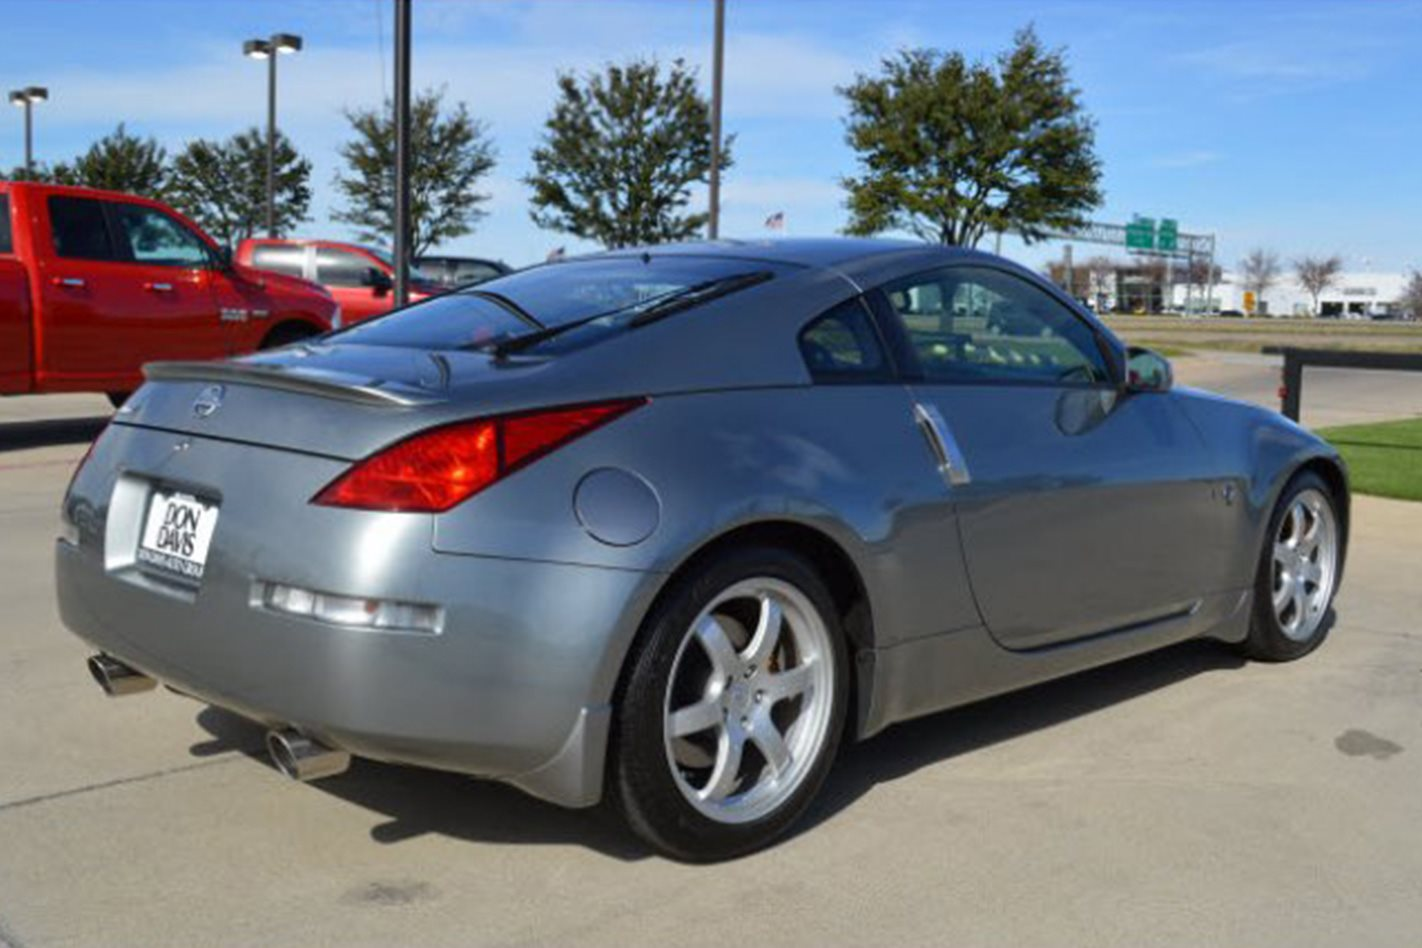 First 2003 Nissan 350Z rear